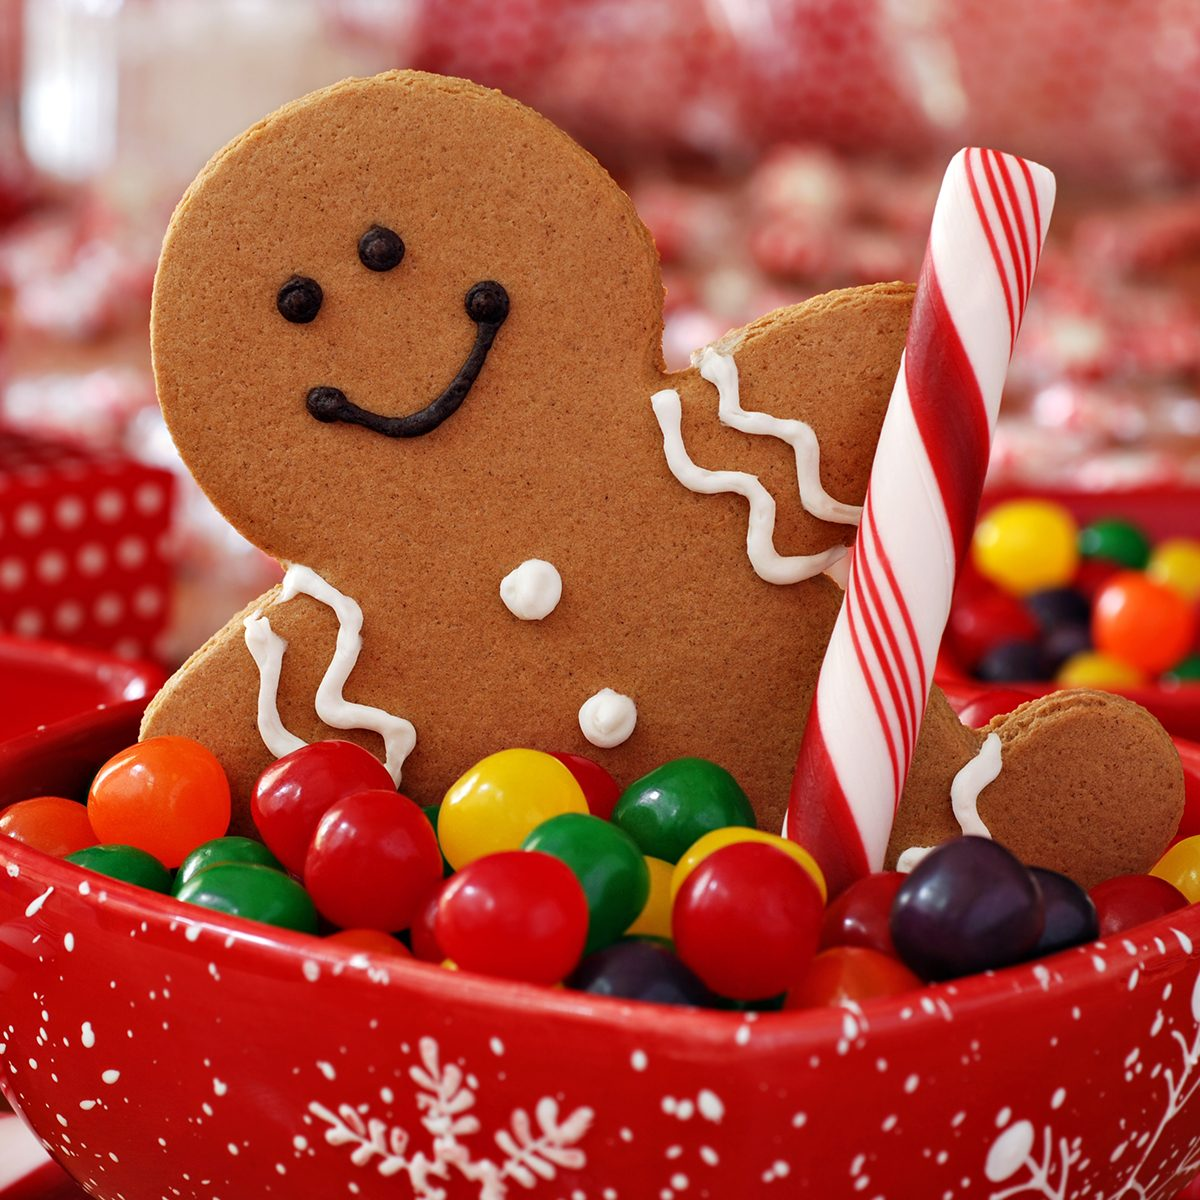 Fun image of smiling gingerbread man with peppermint stick in holiday snowflake dish with colorful candy.